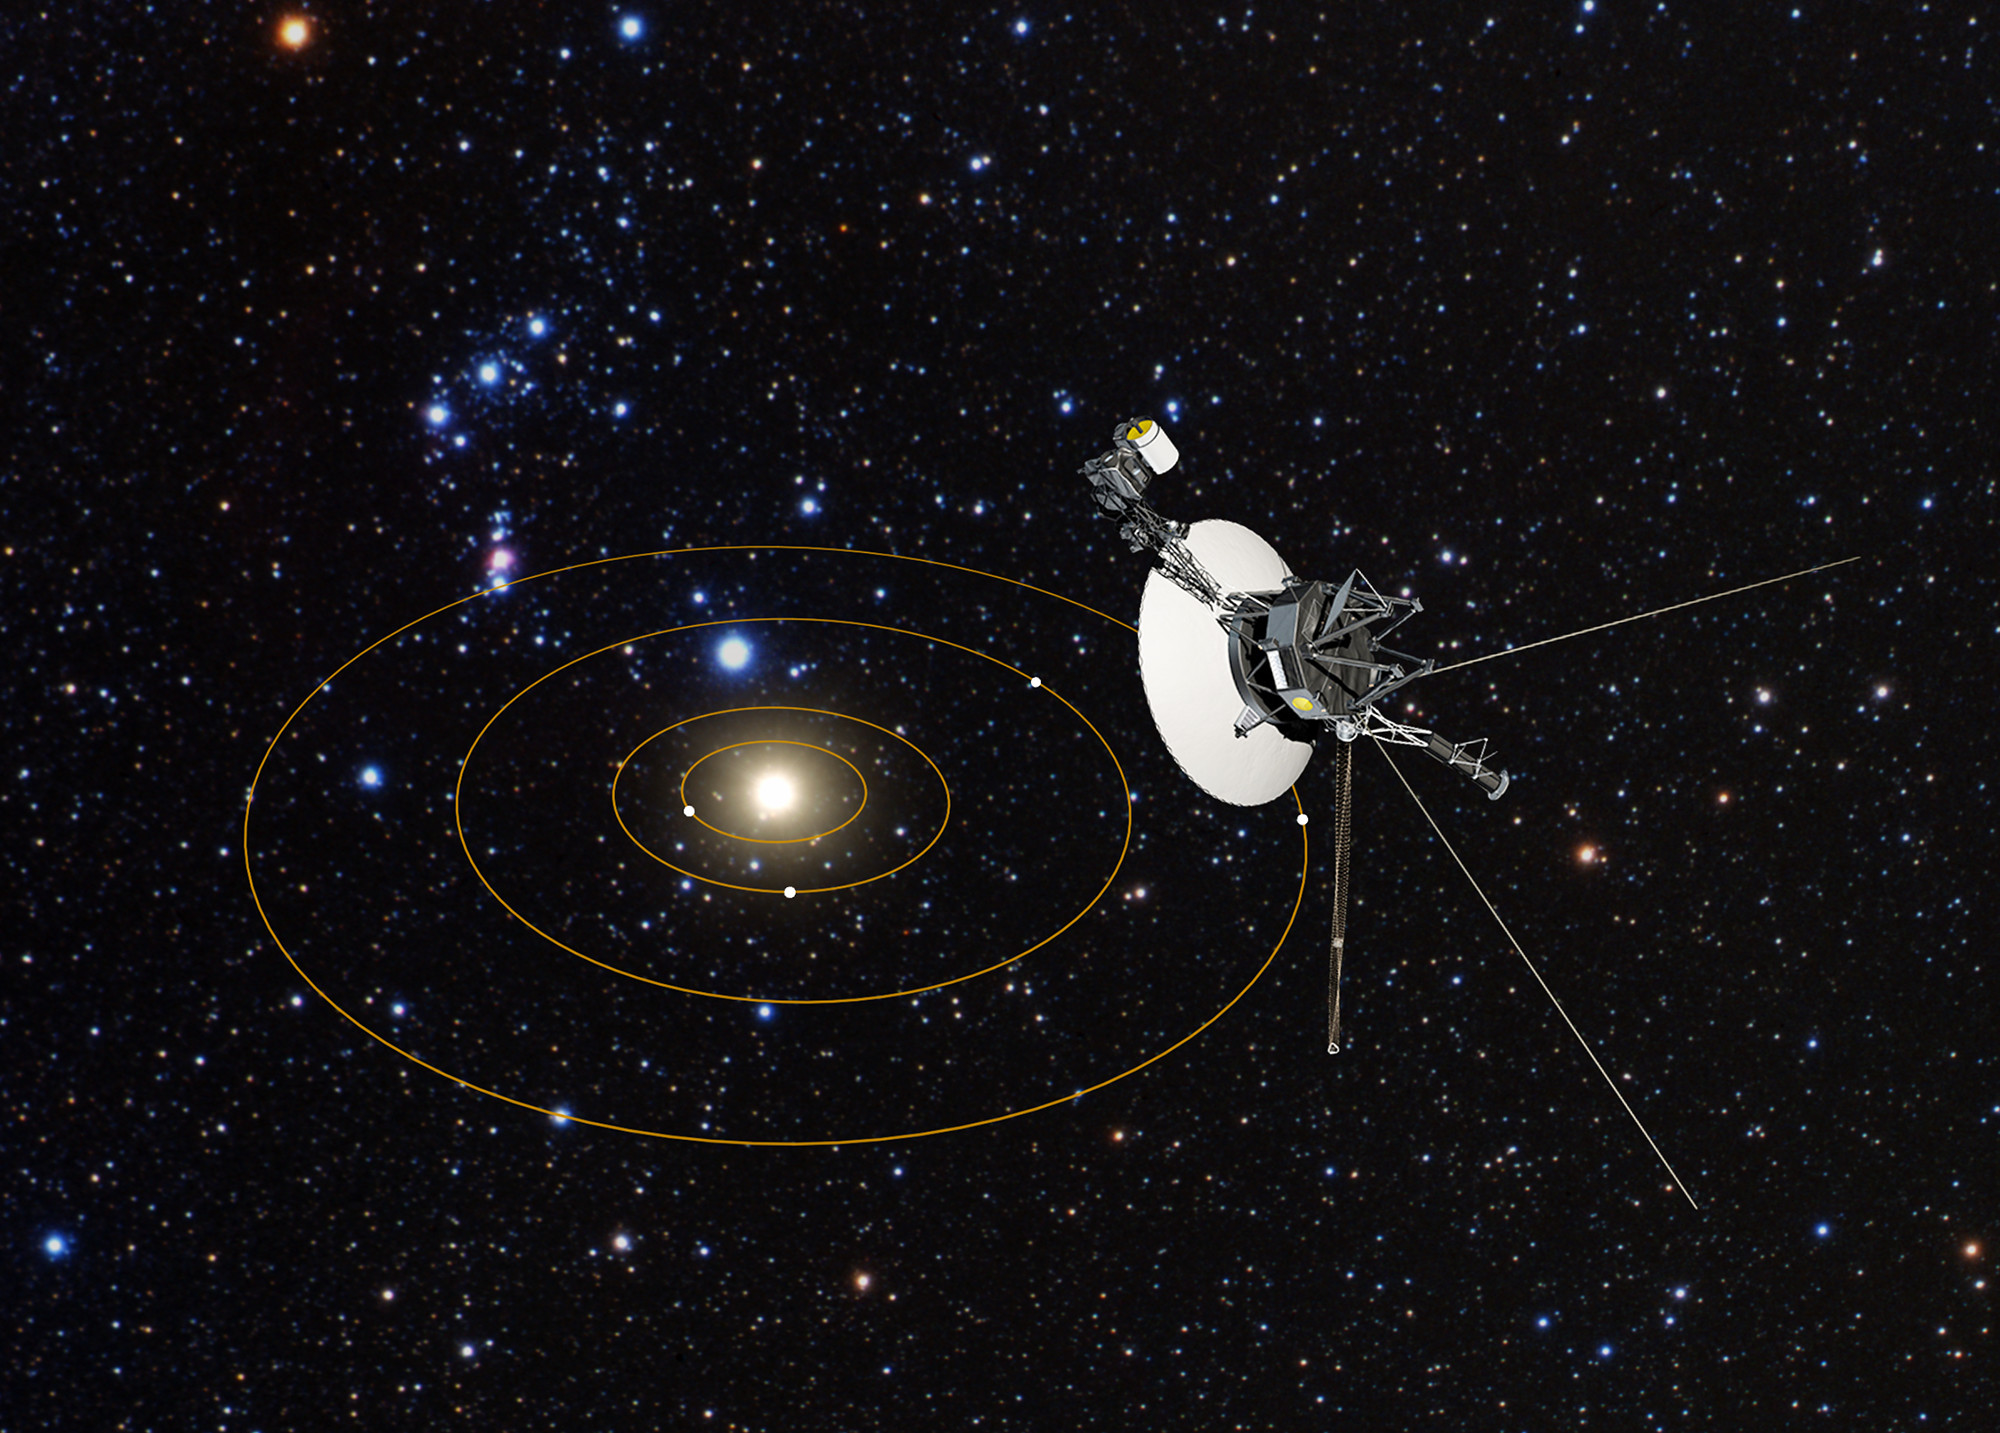 Voyager 1 and the solar system with orbits